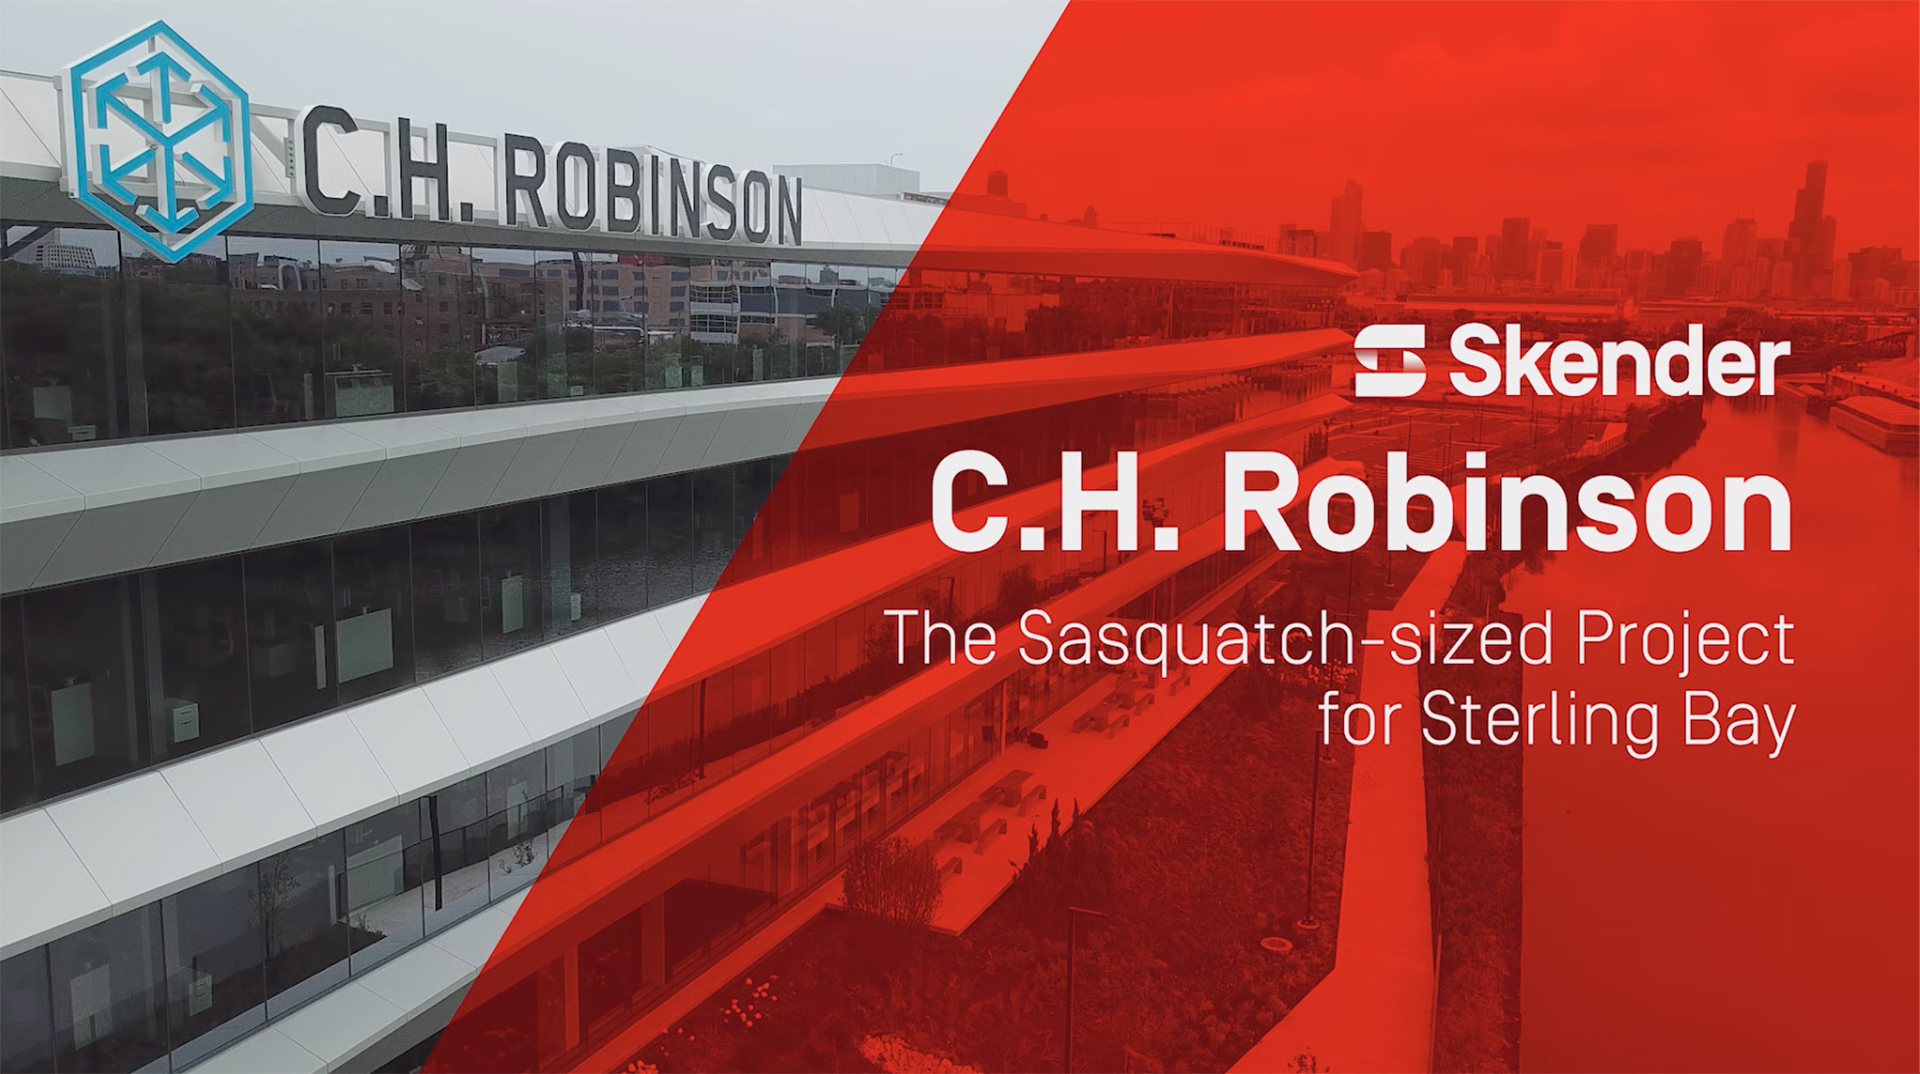 C.H. Robinson – The Sasquatch-sized Sterling Bay Project